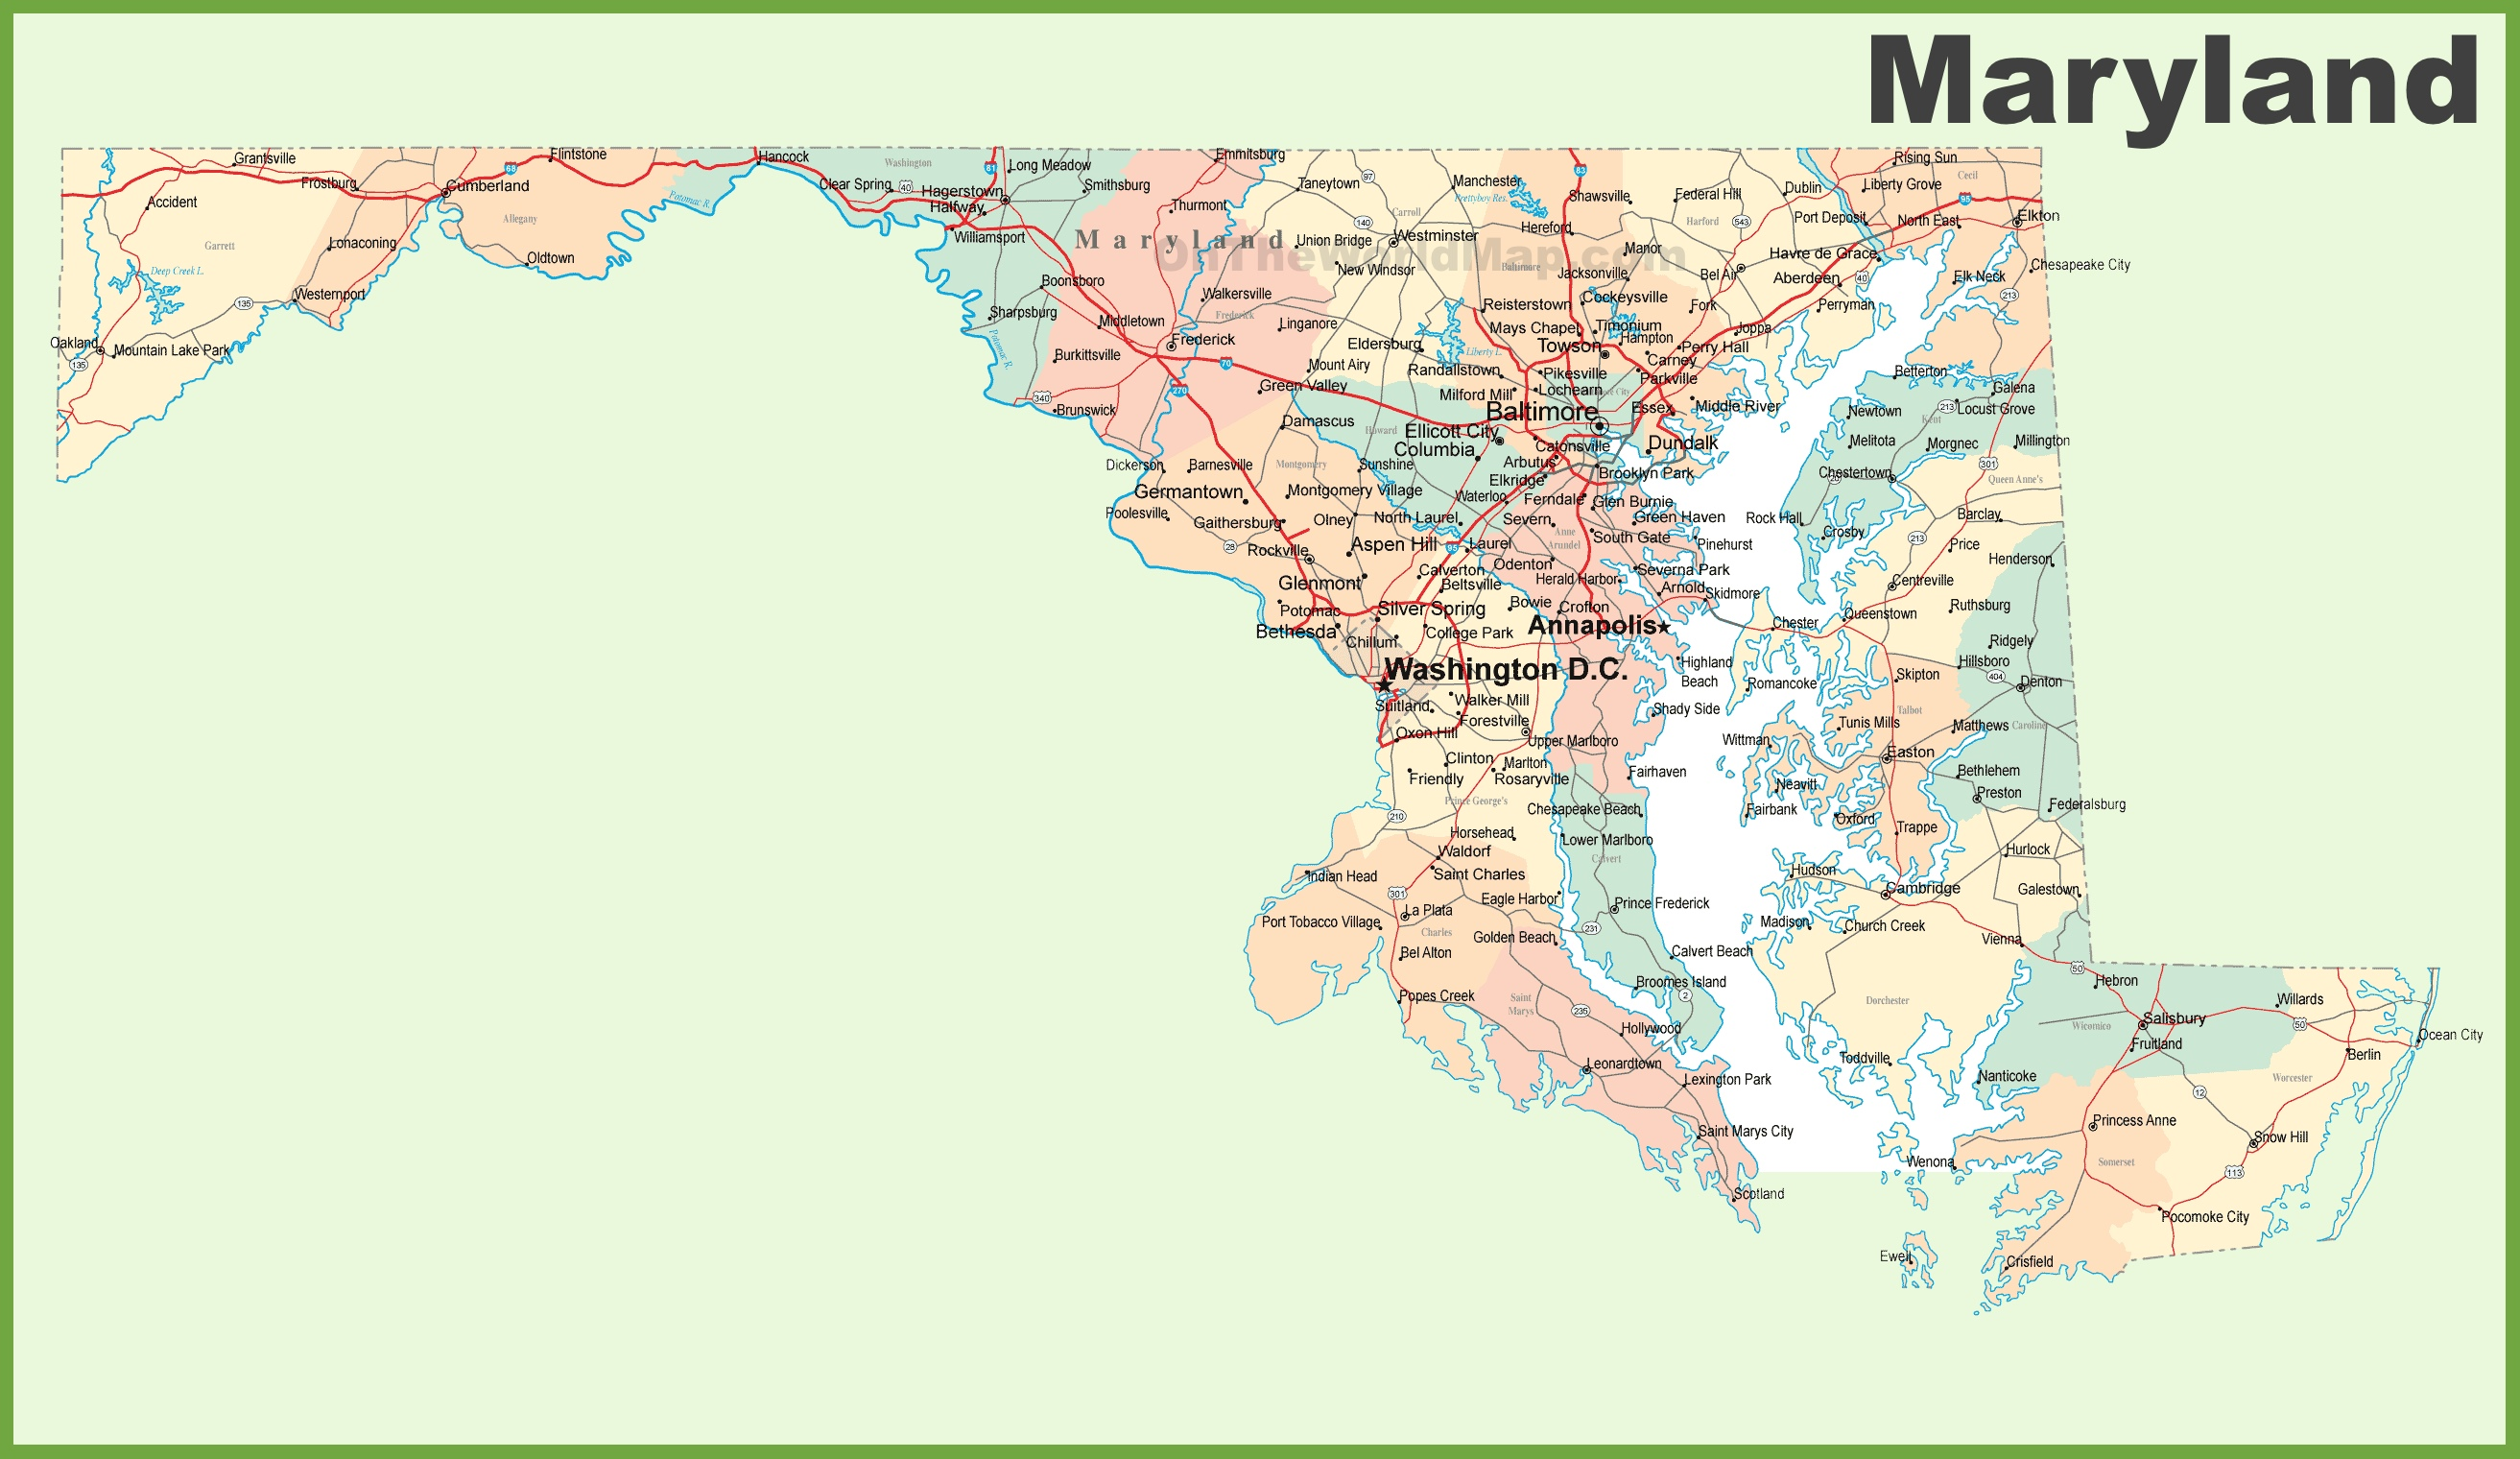 Road Map Of Maryland With Cities - Maryland printable map